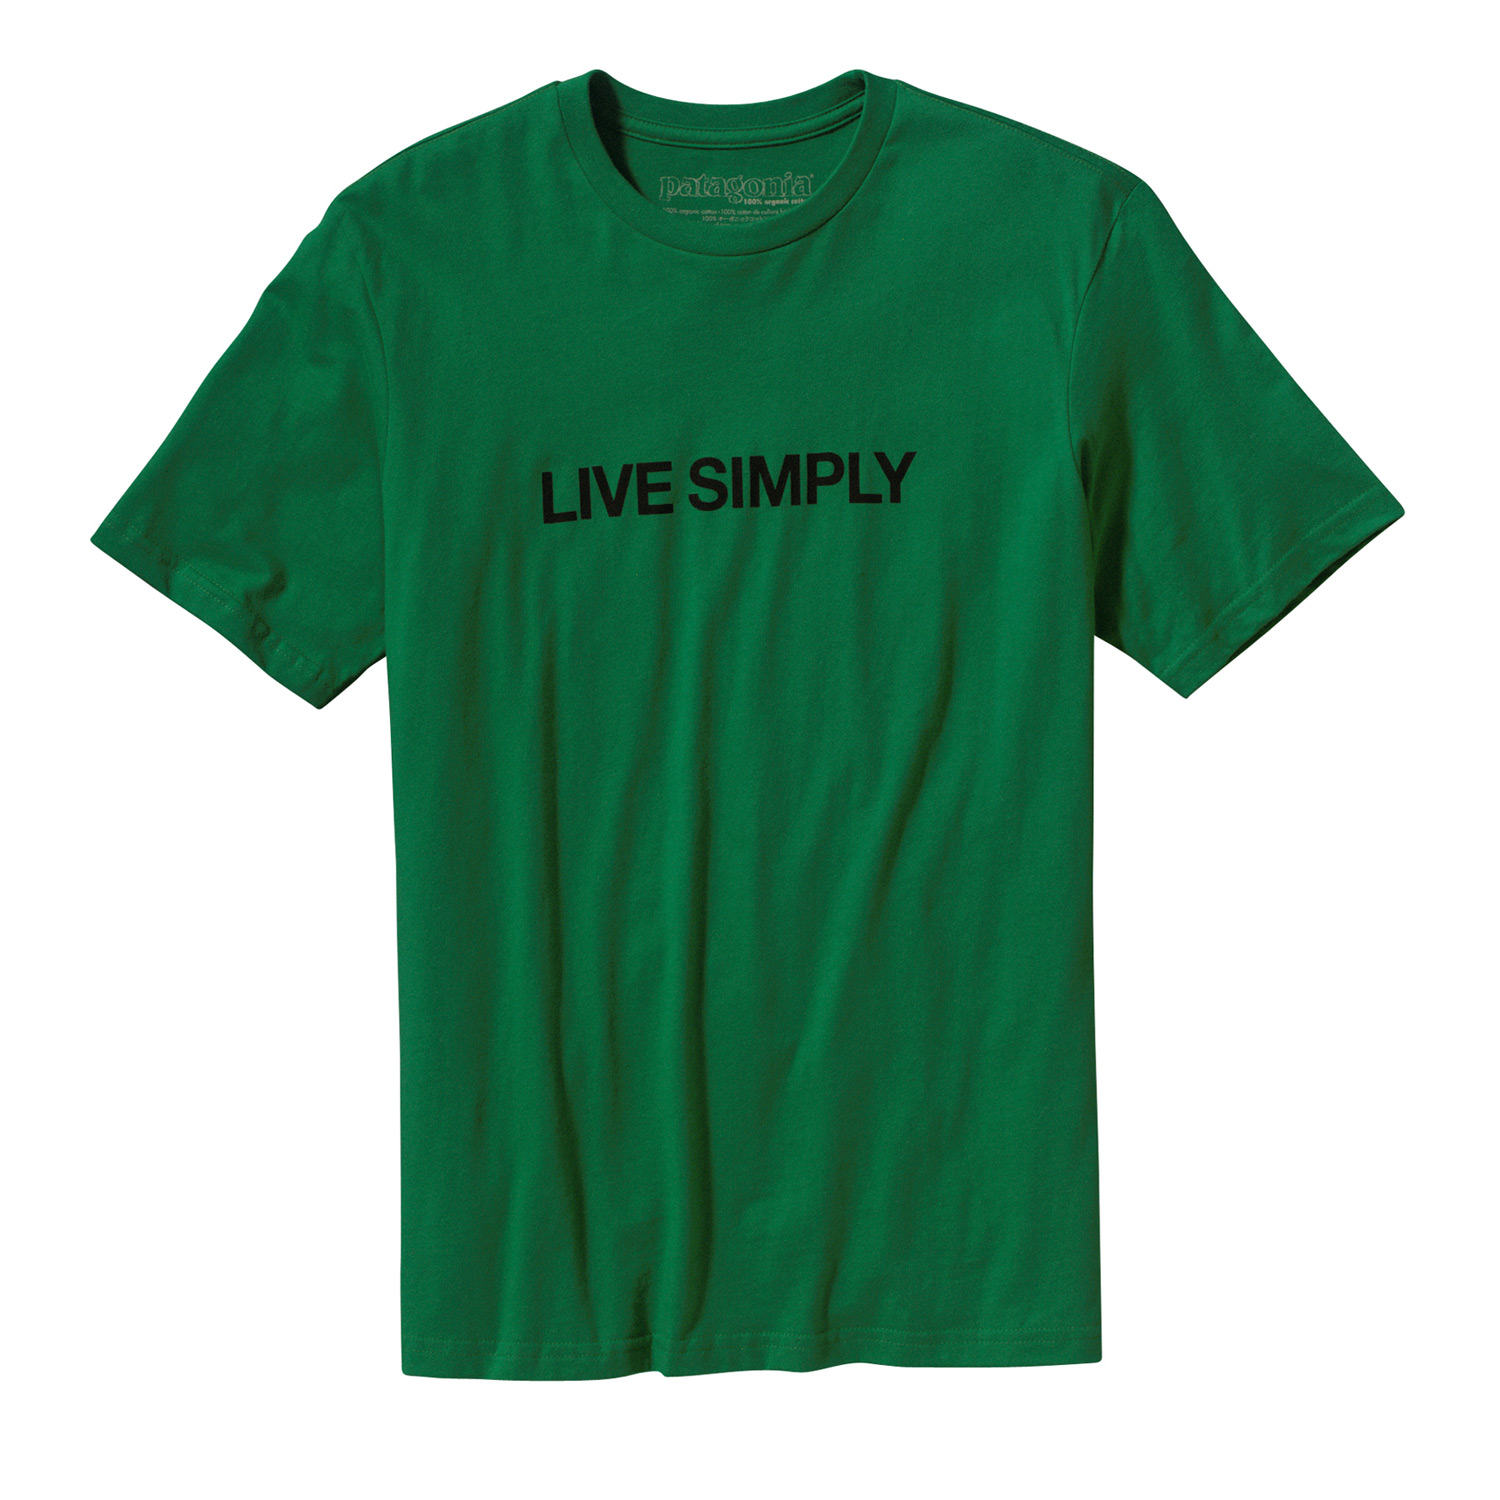 "No cute animals here, Live Simply"" with text only. Original art by Geoff McFetridgeKey Features of the Patagonia Live Simply Text T-Shirt Shamarock Green:  Screen-print inks are PVC- and phthalate-free  Taped shoulder seams for comfort  Artist: Geoff McFetridge  Slim fit  fabric: 4.4-oz 100% organic cotton - $20.95"